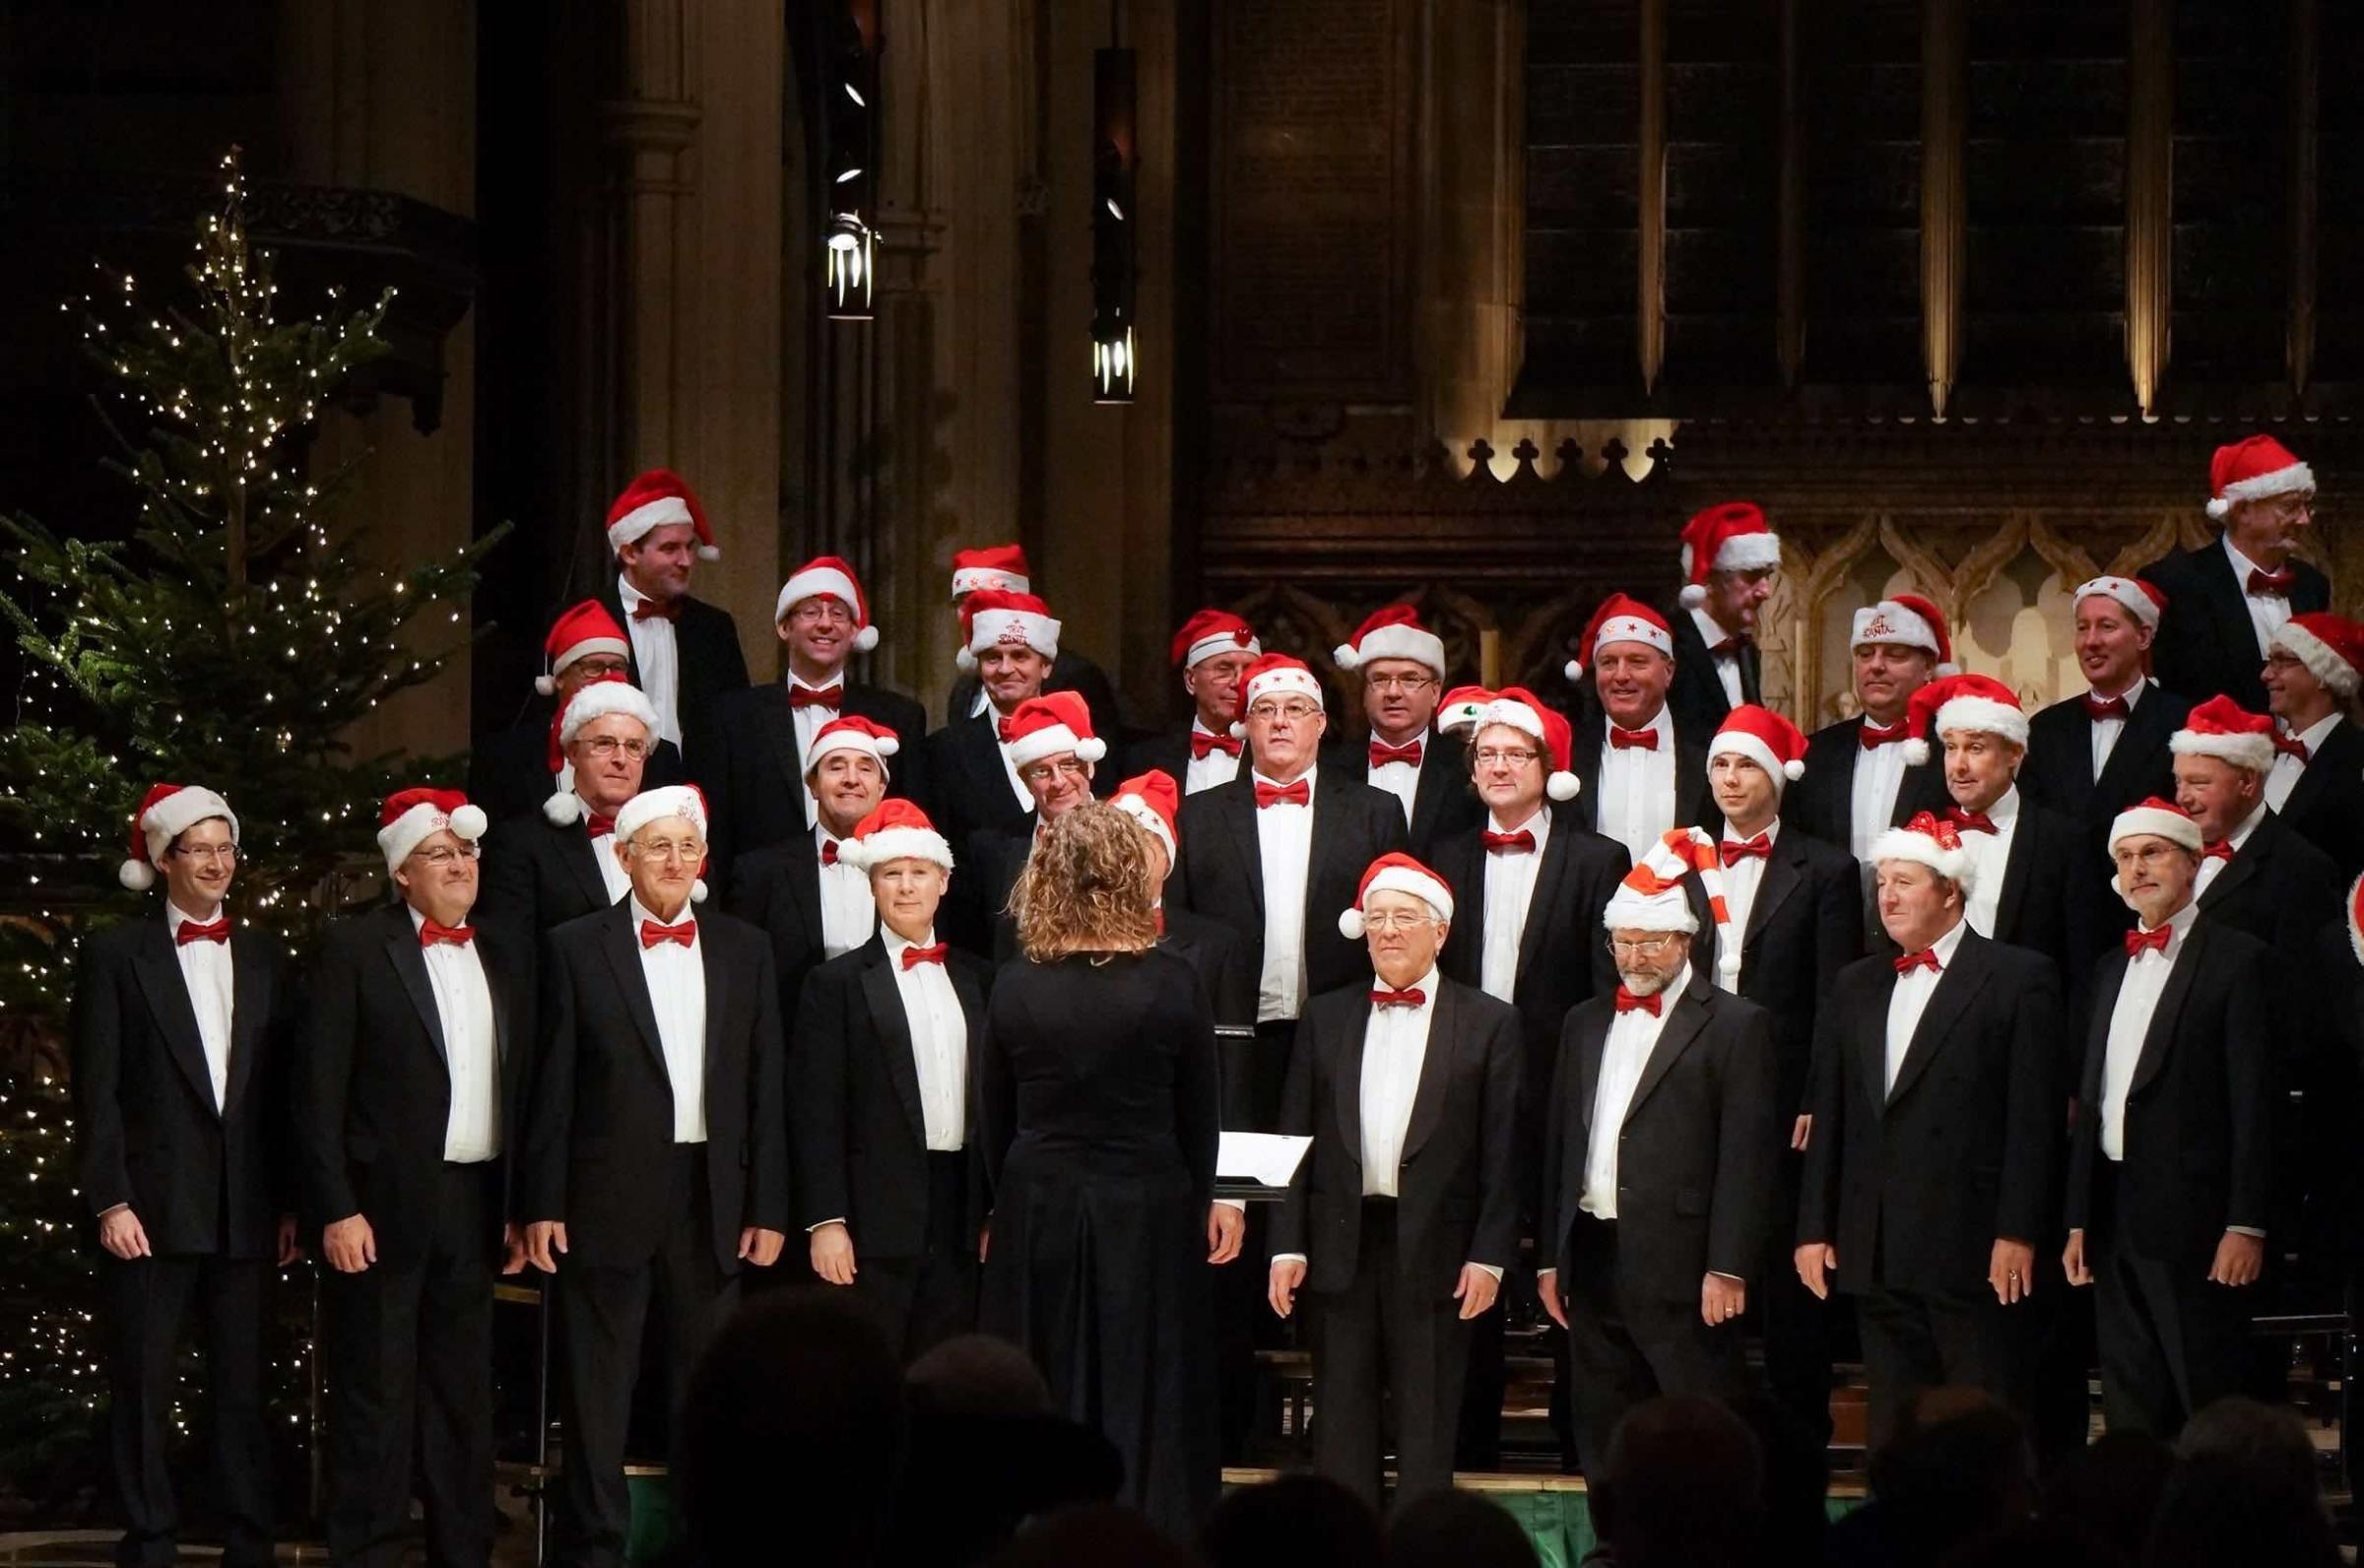 Christmas Concert in aid of the Friends of Erlestoke Prison